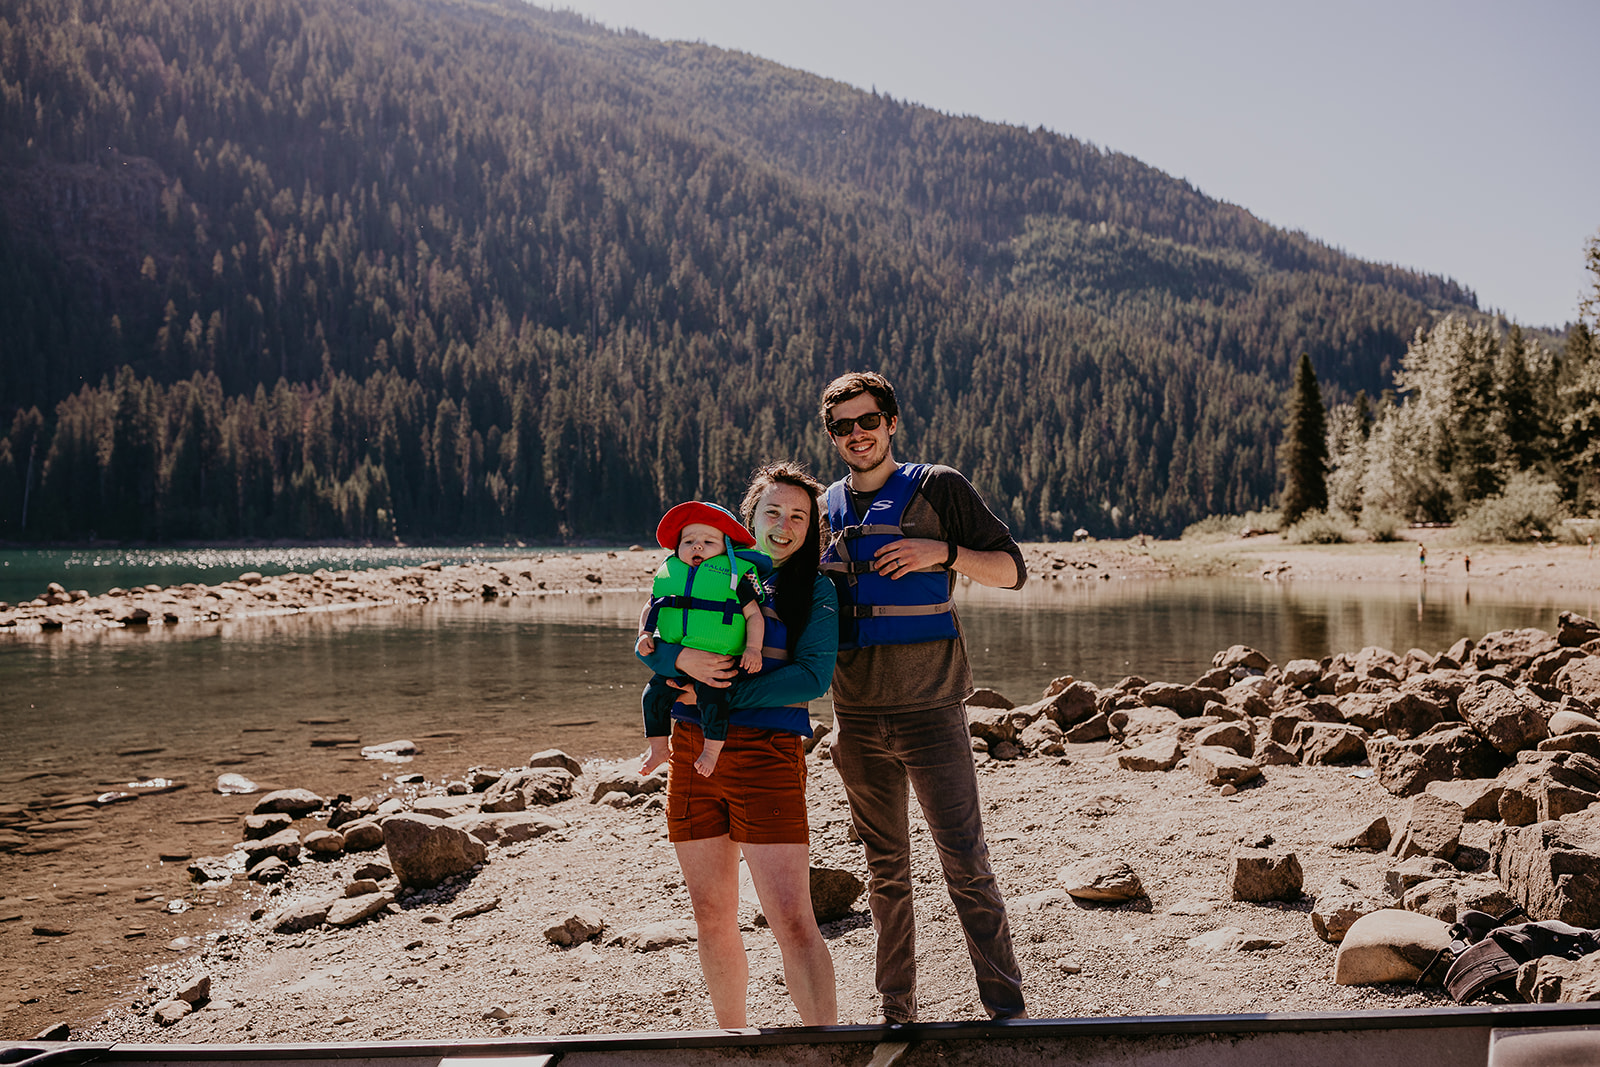 kachess-lake-camping-family-portraits-megan-gallagher-photography_(305_of_335).jpg